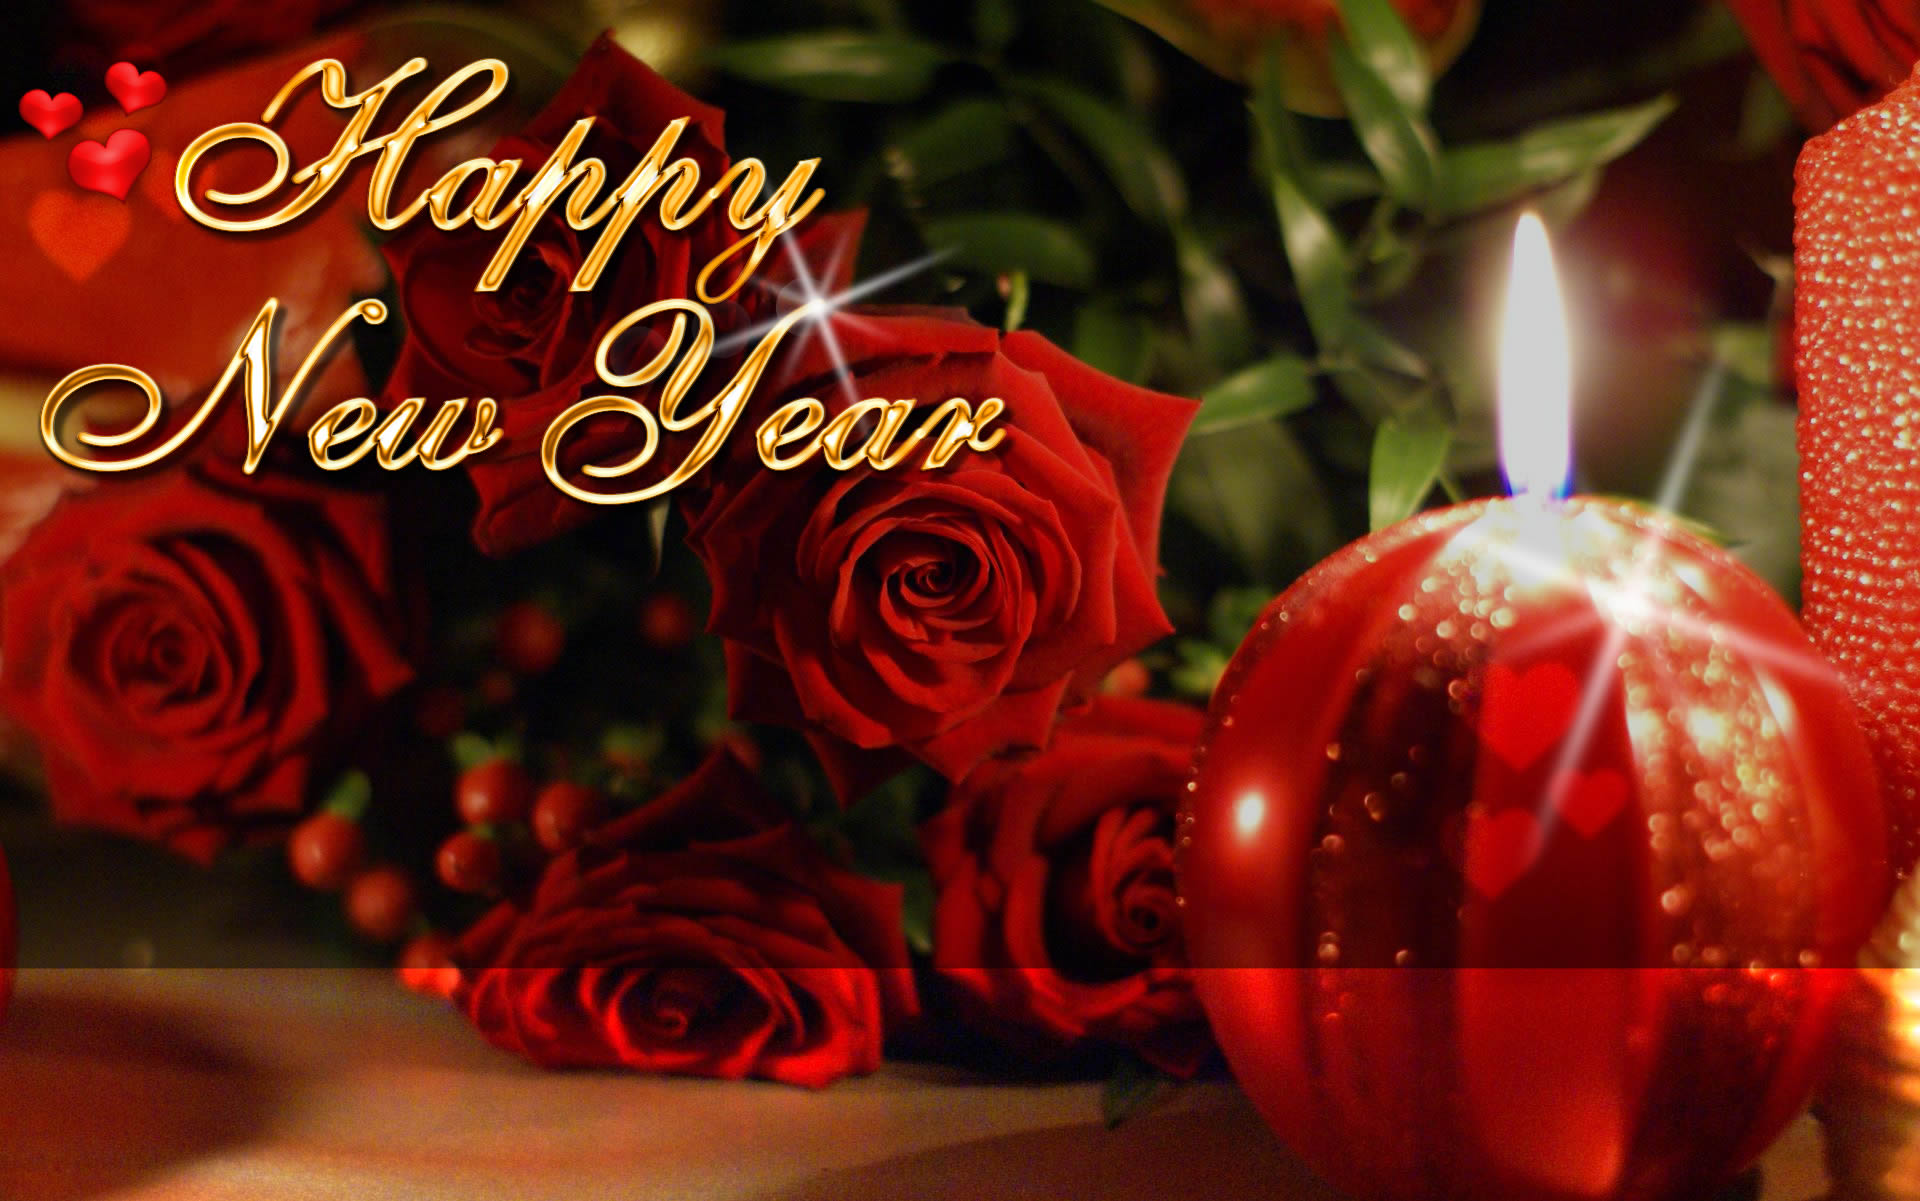 Happy New Year   Wallpapers Pictures Pics Images Photos Desktop 1920x1201